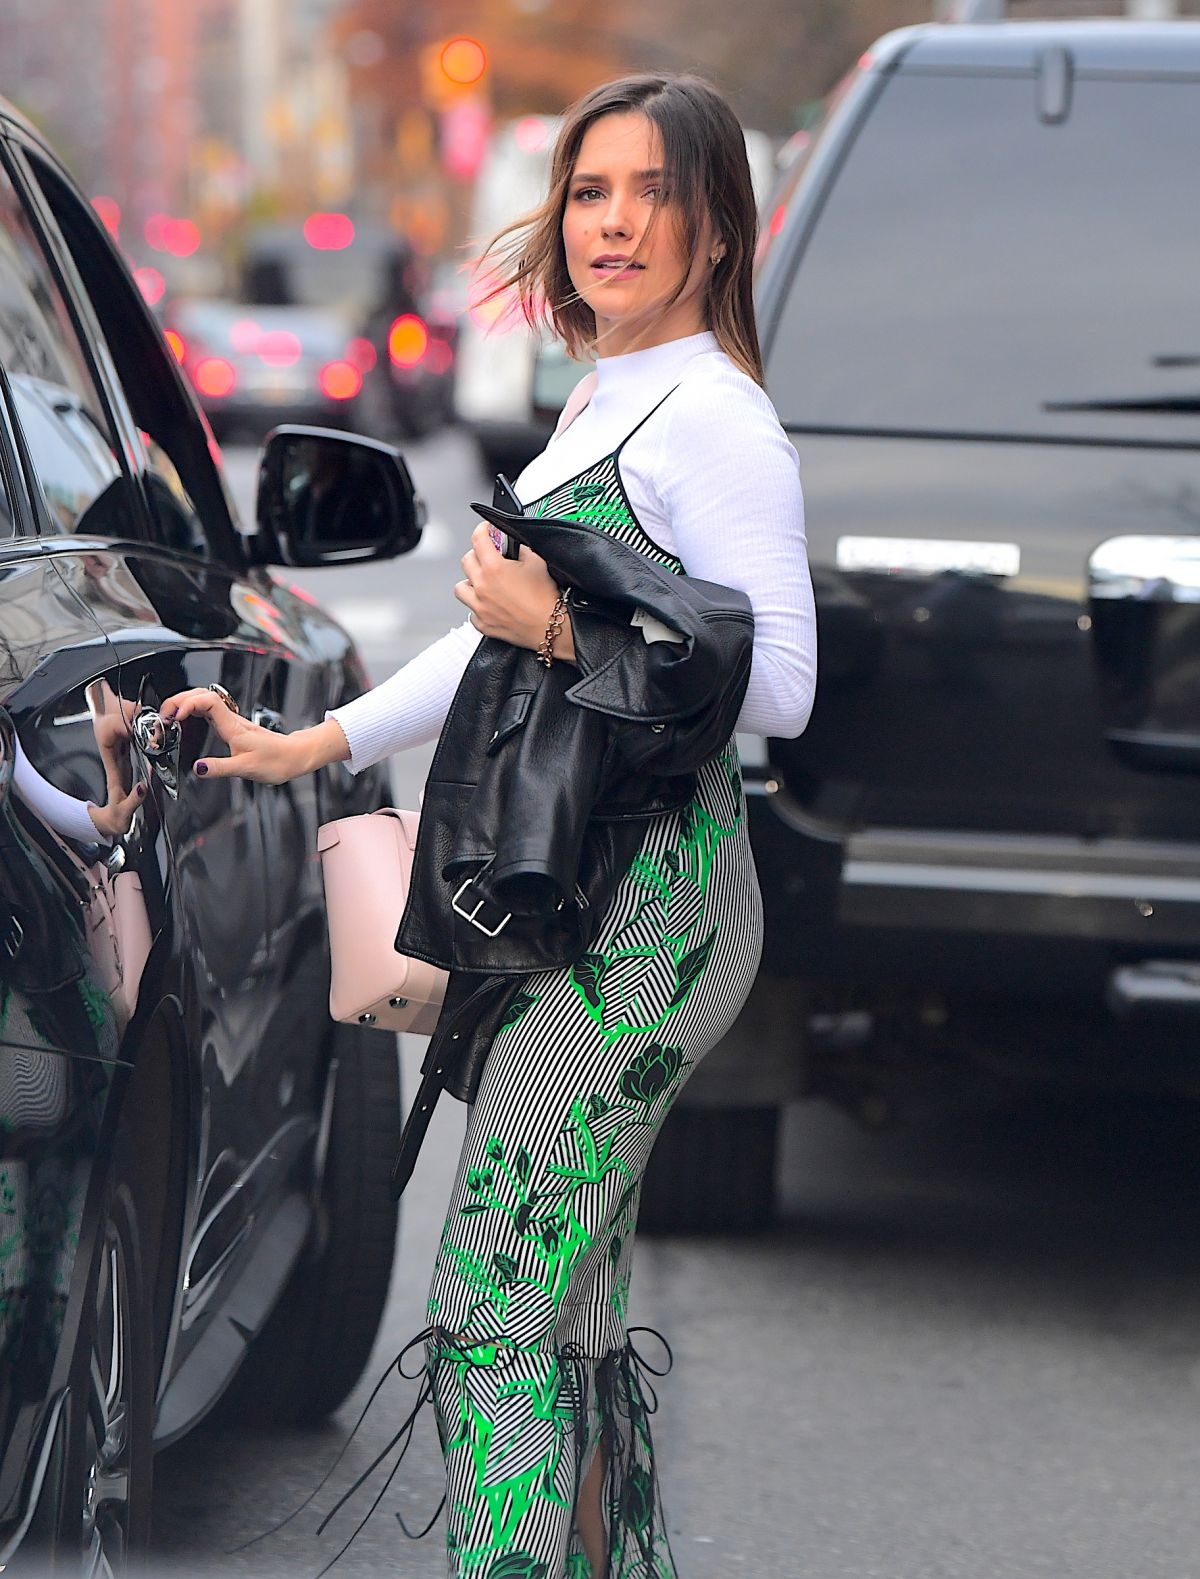 Sophia Bush rush for riding her car in New York